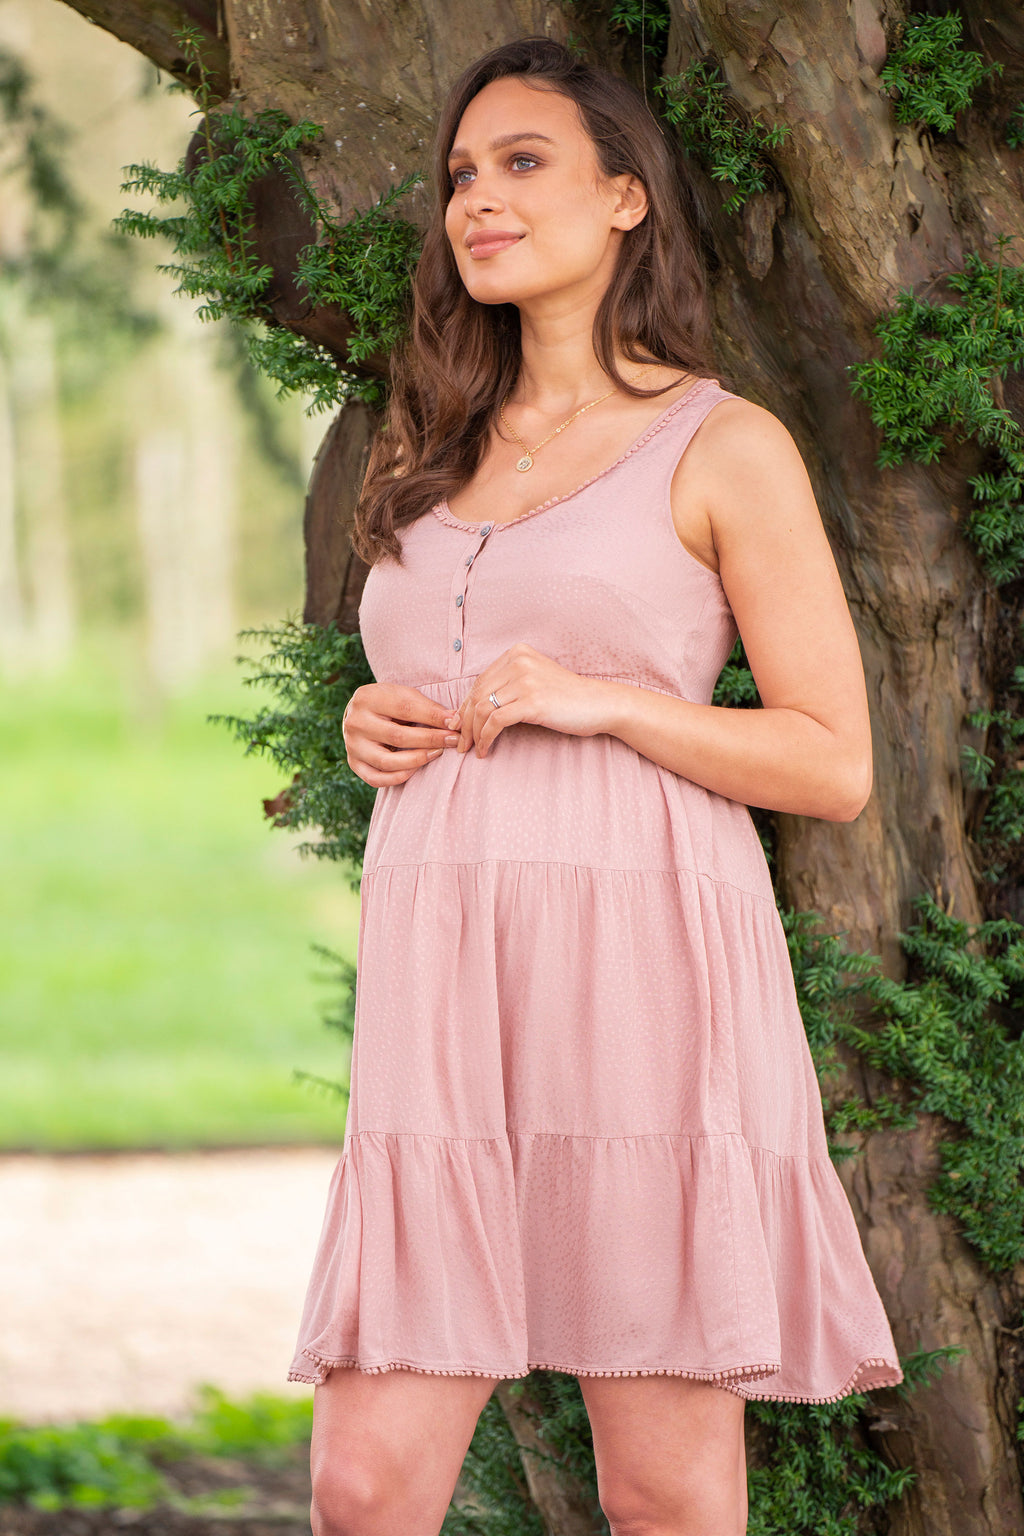 Brandi Tiered Blush Maternity Nursing Dress Seraphine